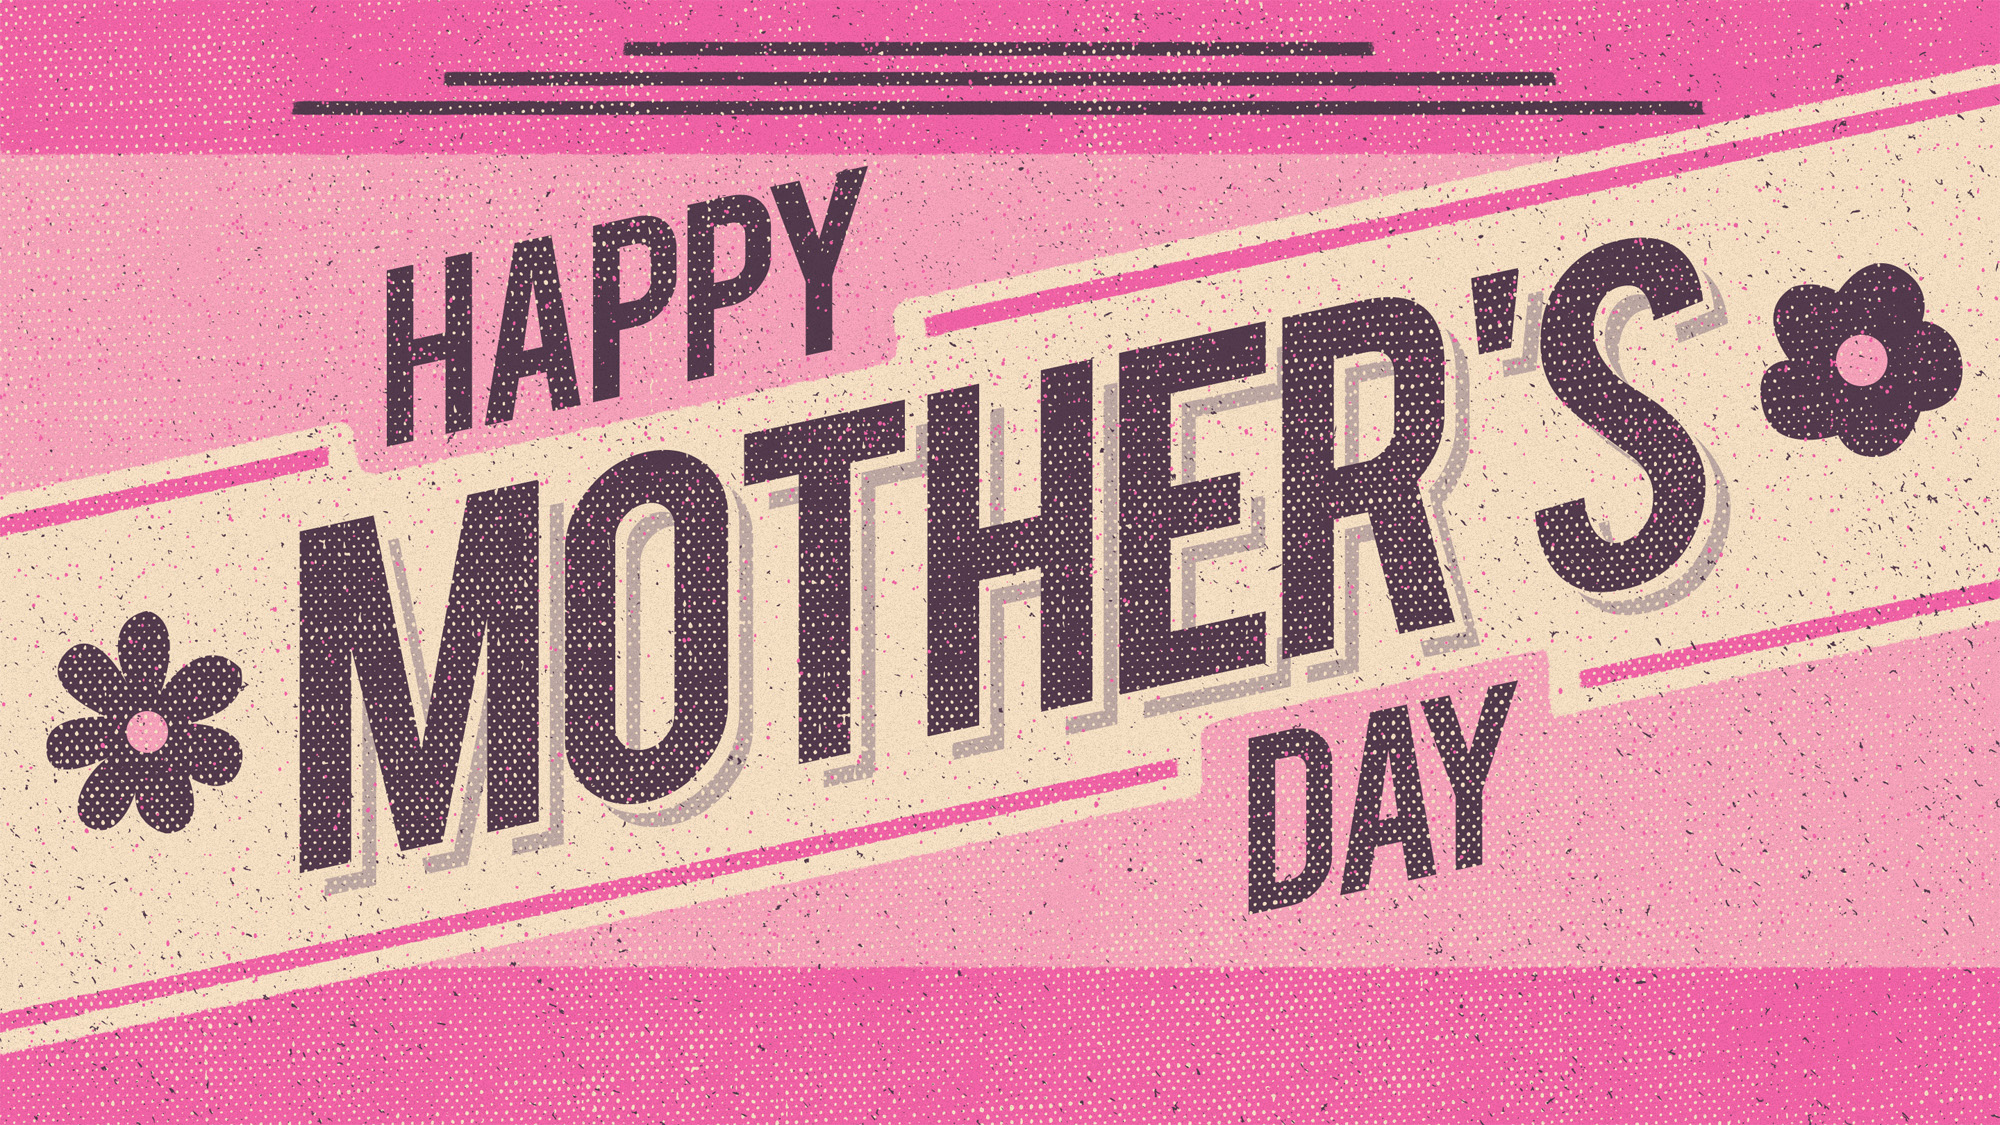 halftone_happy_mother_s_day-title-2-Wide 16x9.jpg